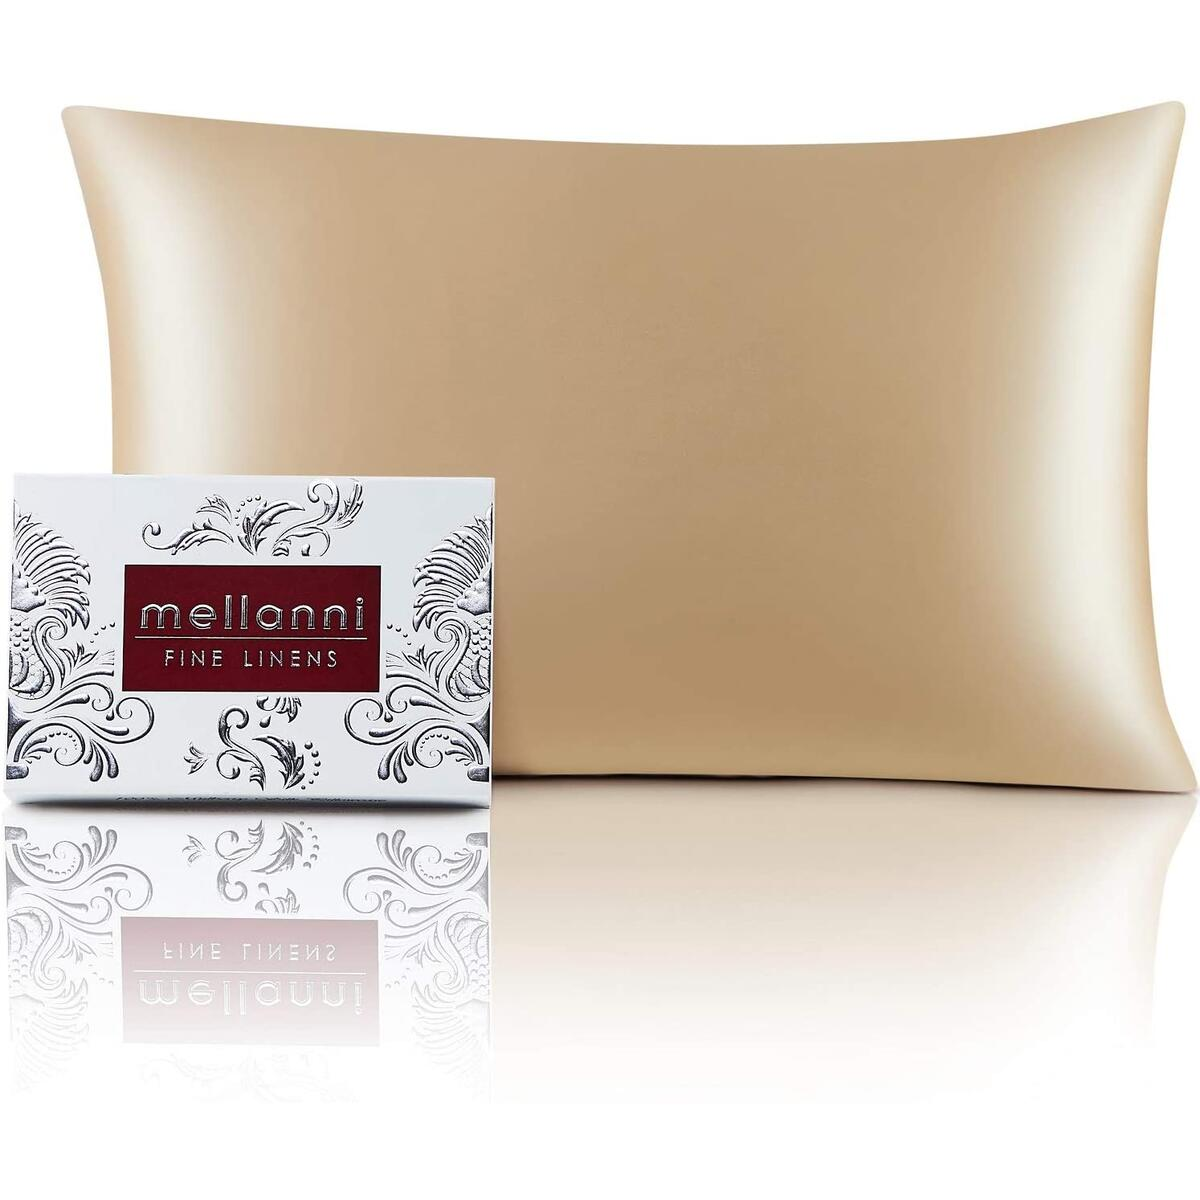 Mellanni Silk Pillowcase for Hair and Skin - Both Sides 100% Pure Natural Mulberry Silk - 19 Momme - Hidden Zipper Closure Pillow Case - (King 20